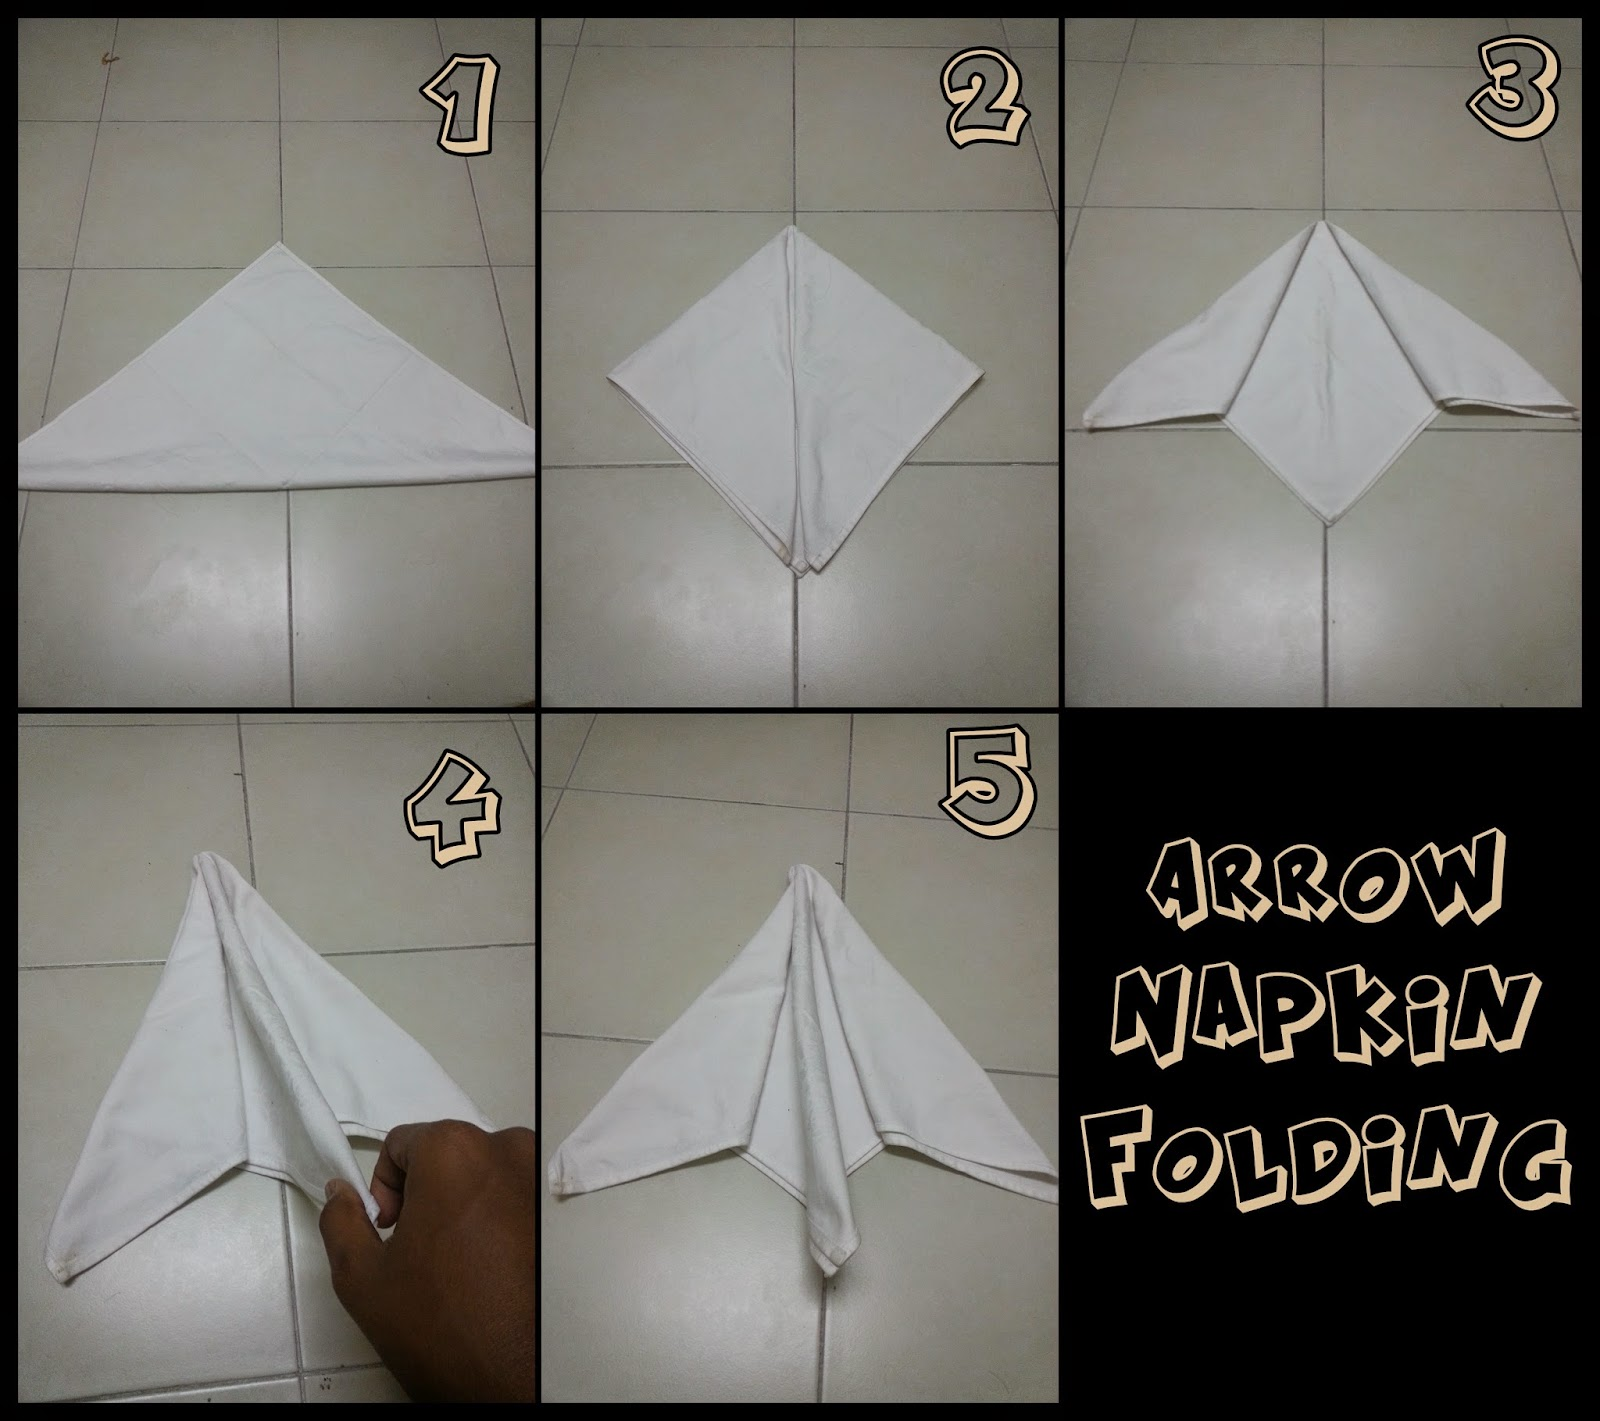 Arrow Folded Napkin